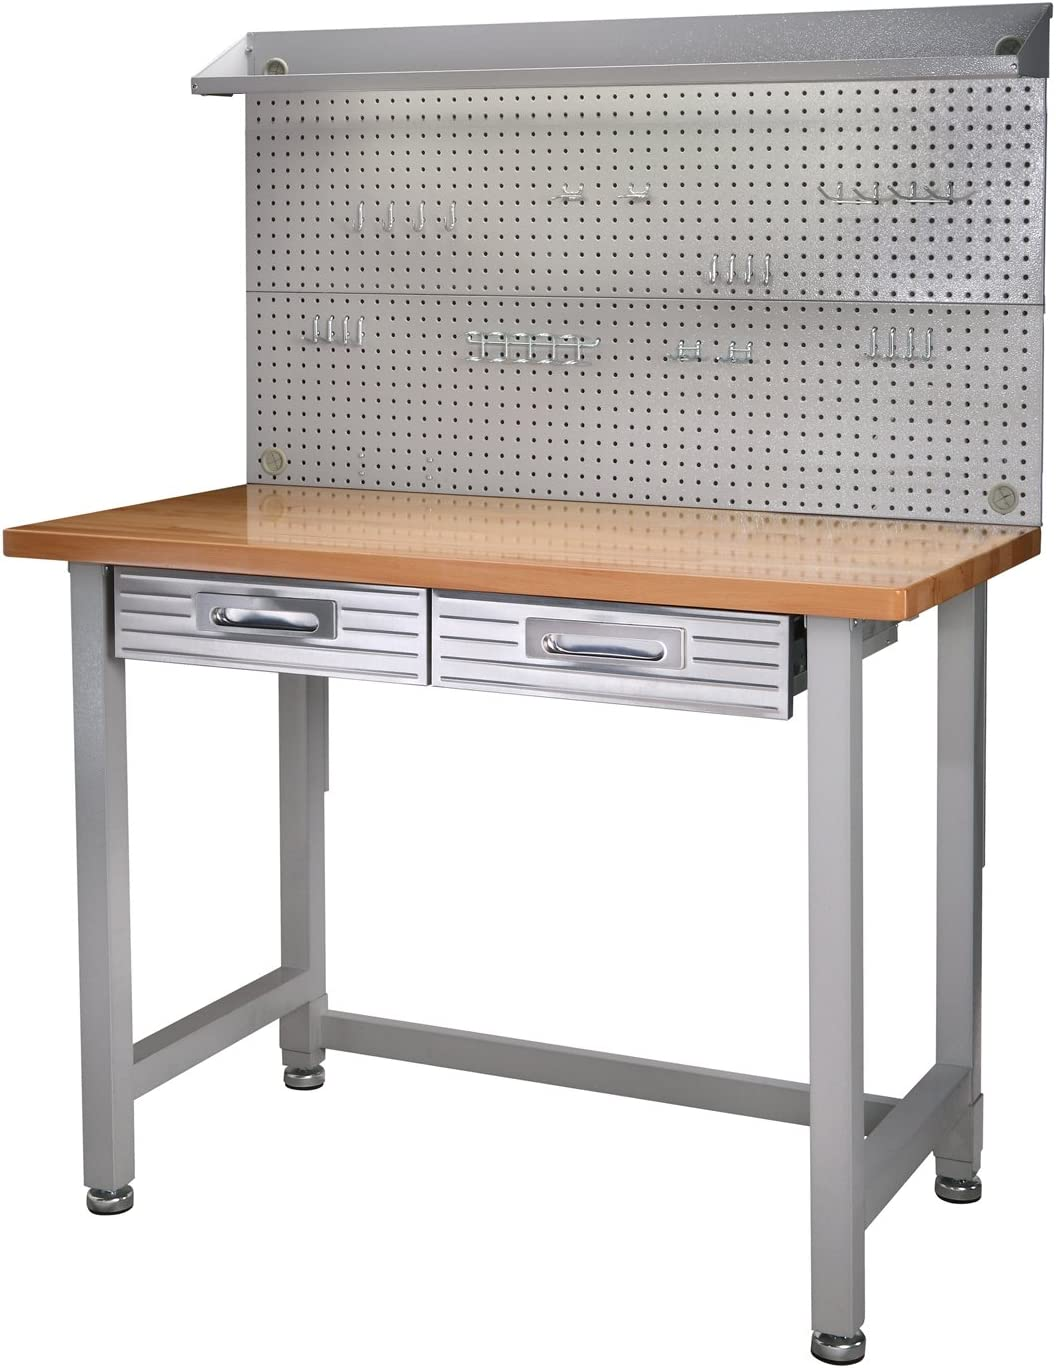 3. Seville Classics UHD20247B UltraHD Lighted Workbench